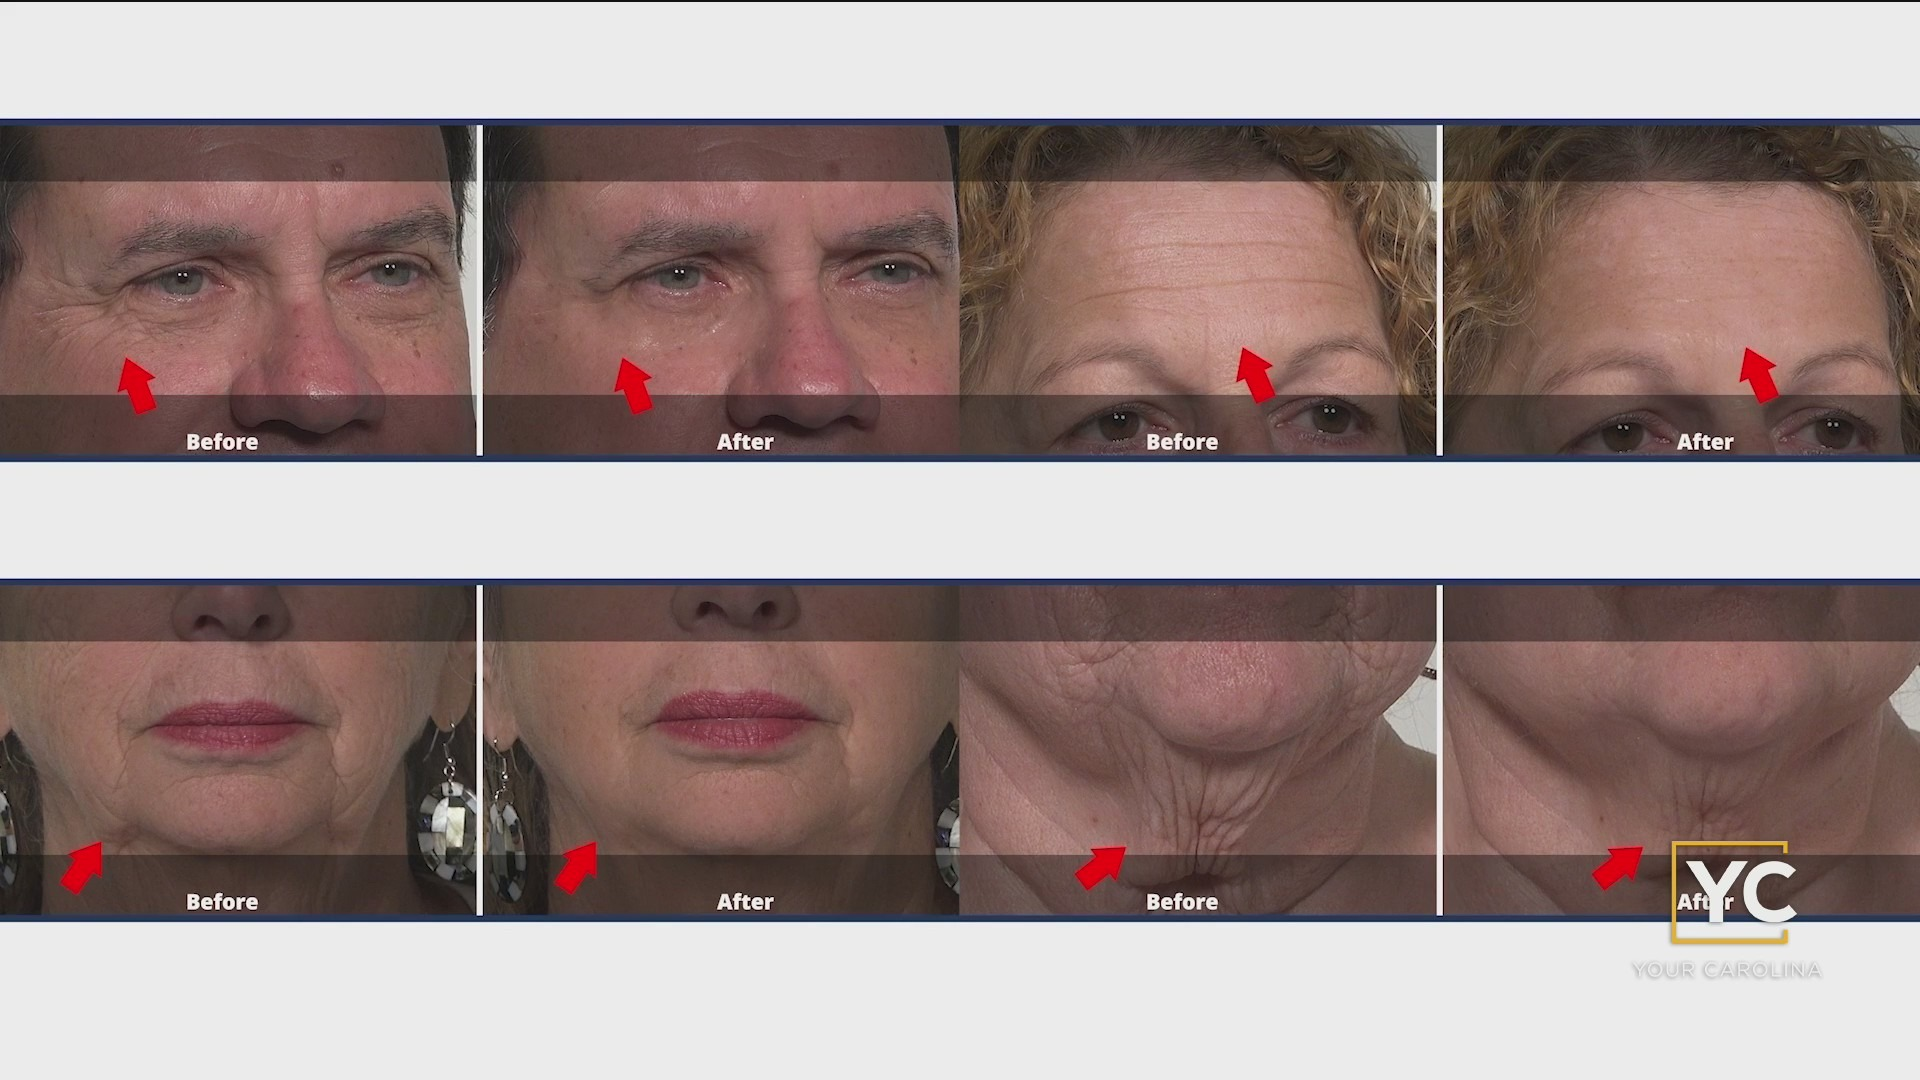 All You Need Is 10 Minutes To Look Young Again With Plexaderm